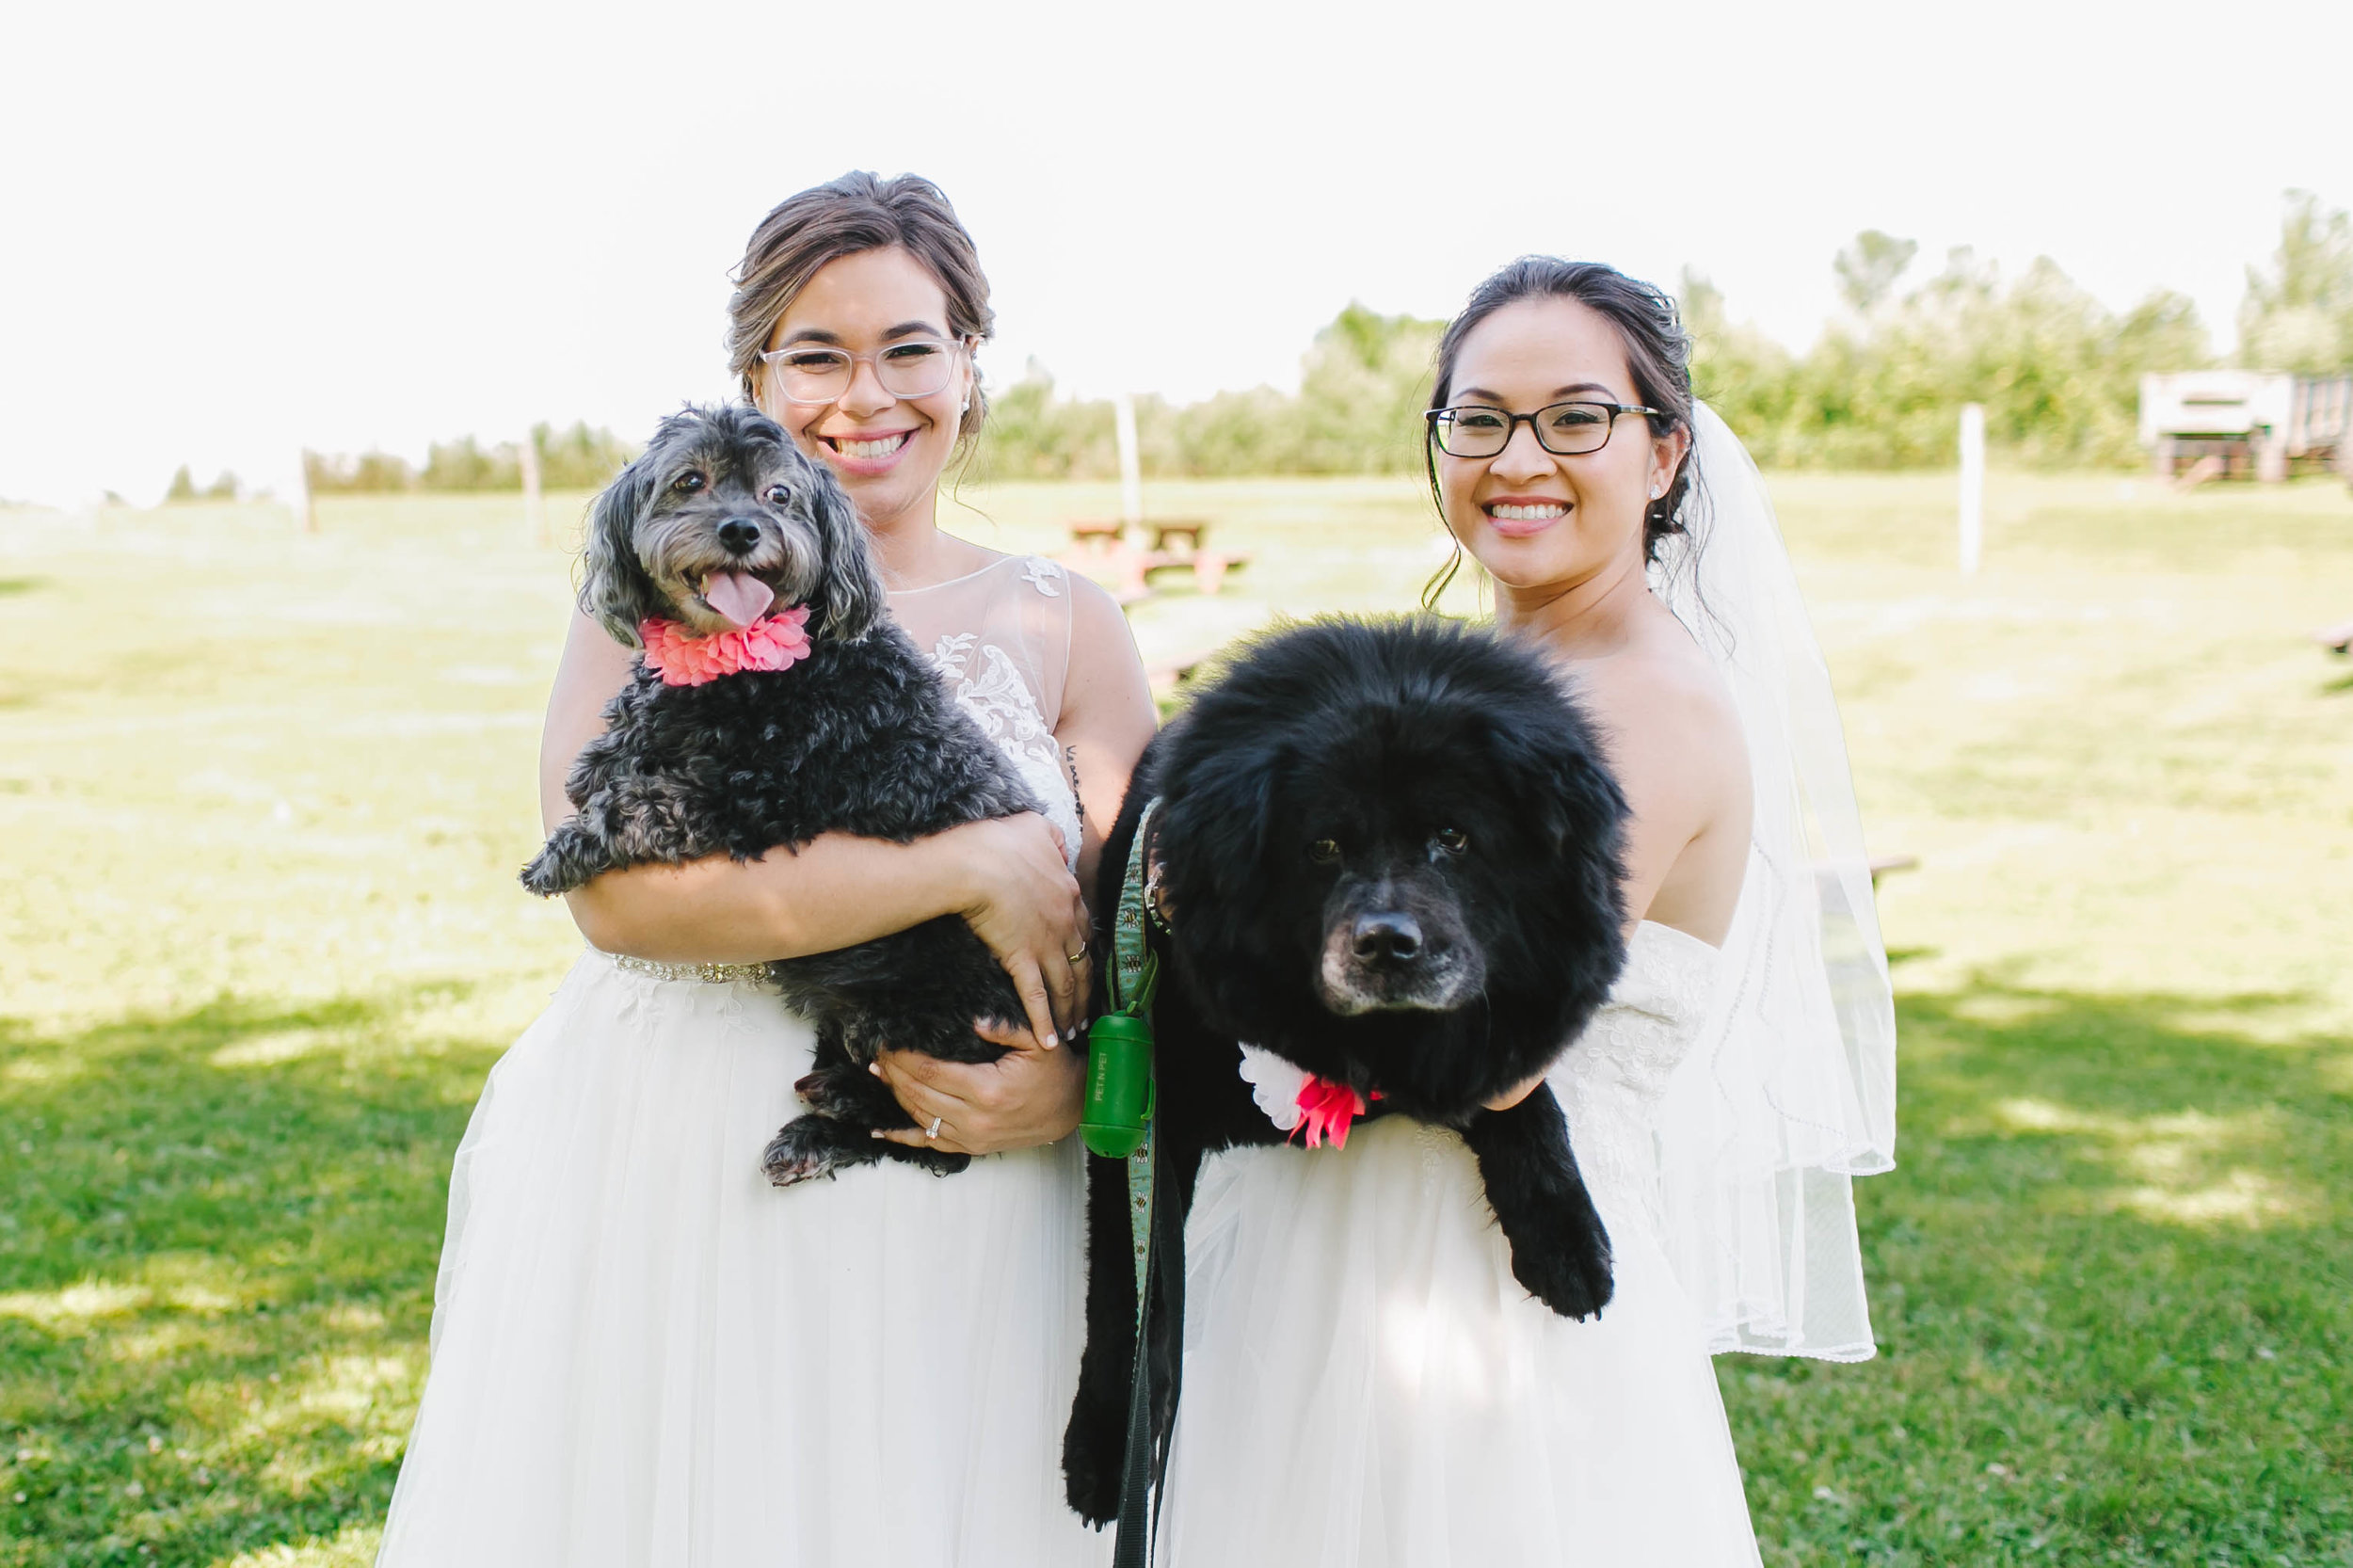 Hyland Orchard and Brewery Wedding with dogs - Emily Tebbetts Photography-17.jpg